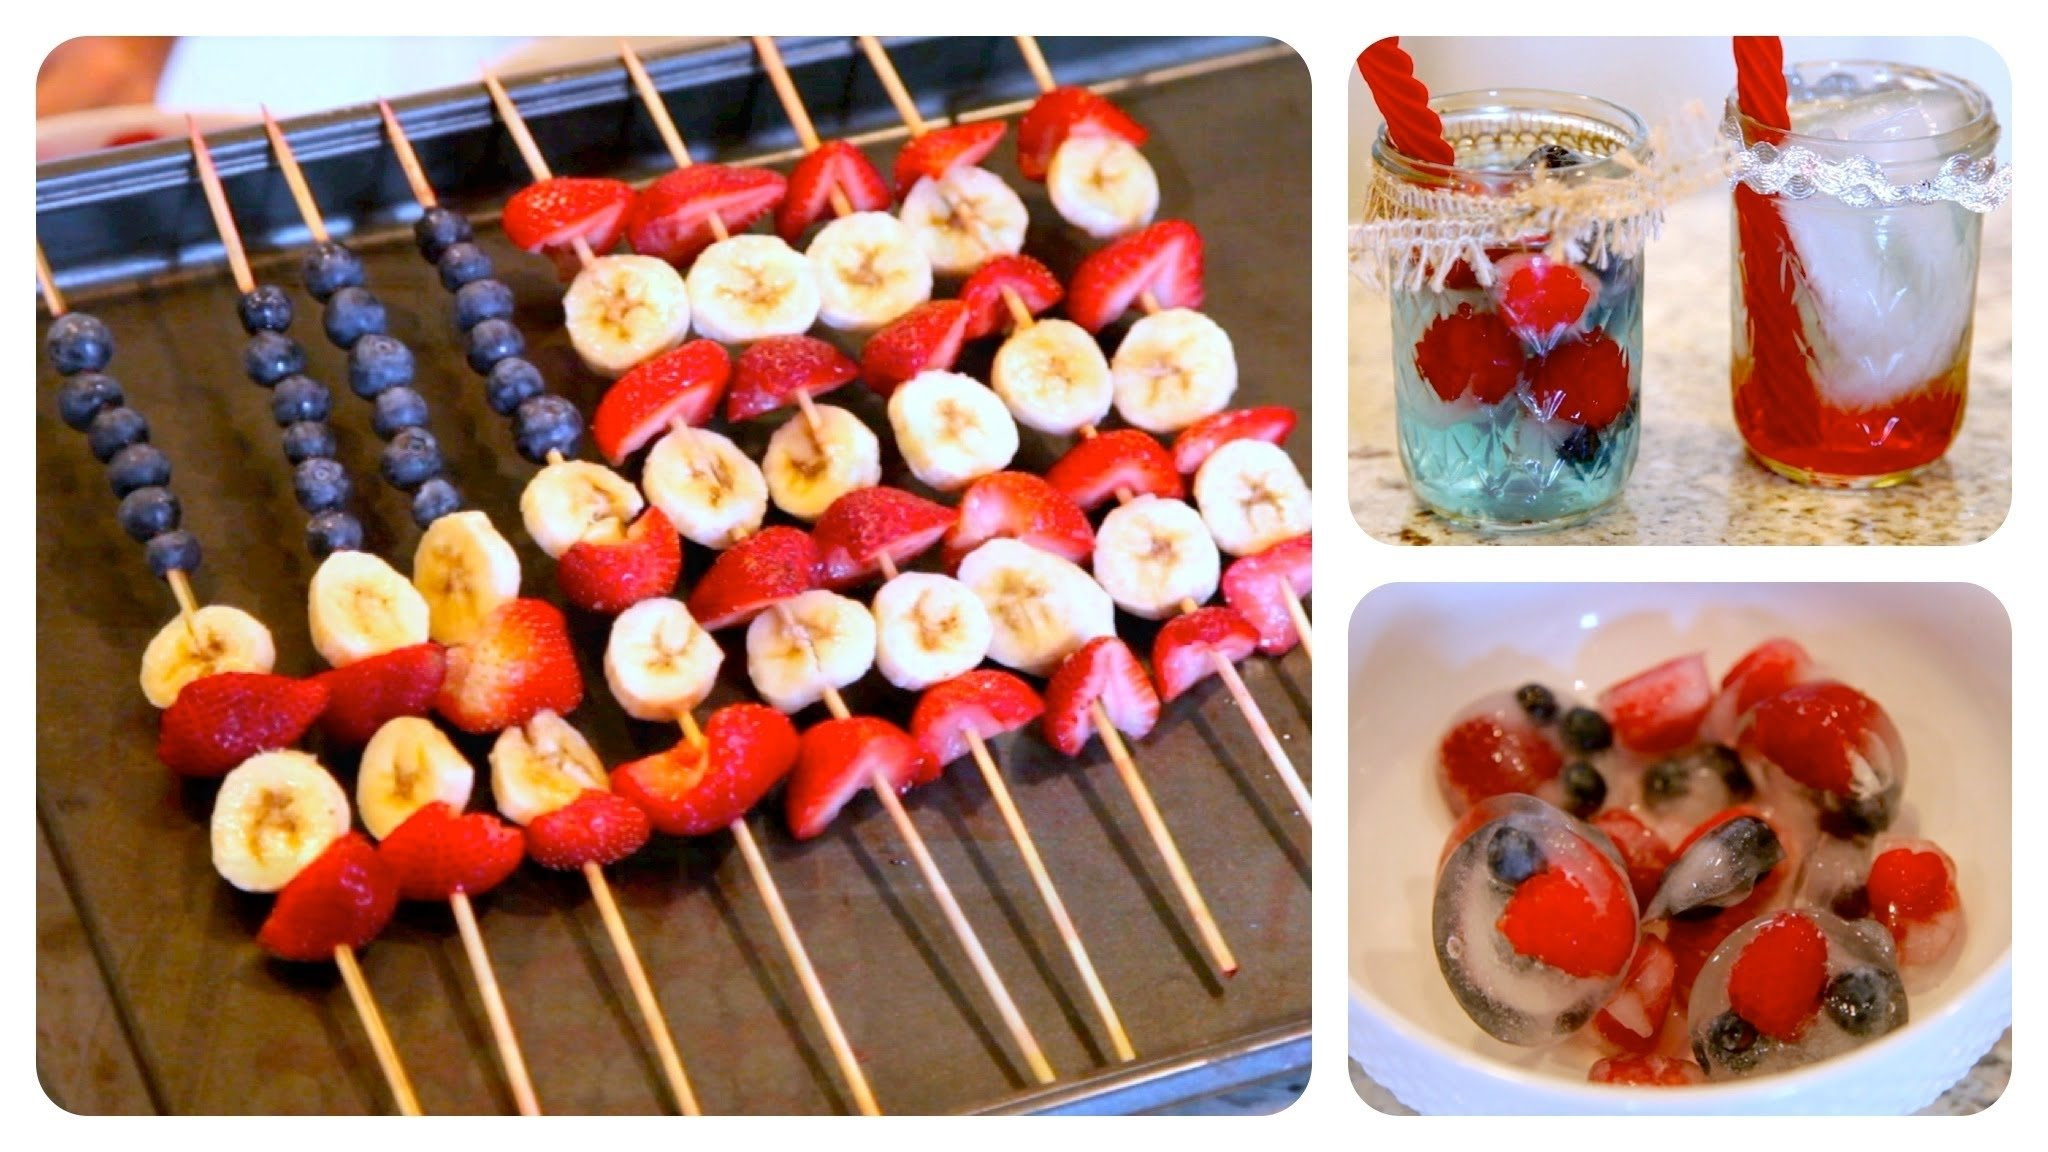 10 Stunning 4Th Of July Snack Ideas diy red white and blue treats 4th of july ideas youtube 1 2020